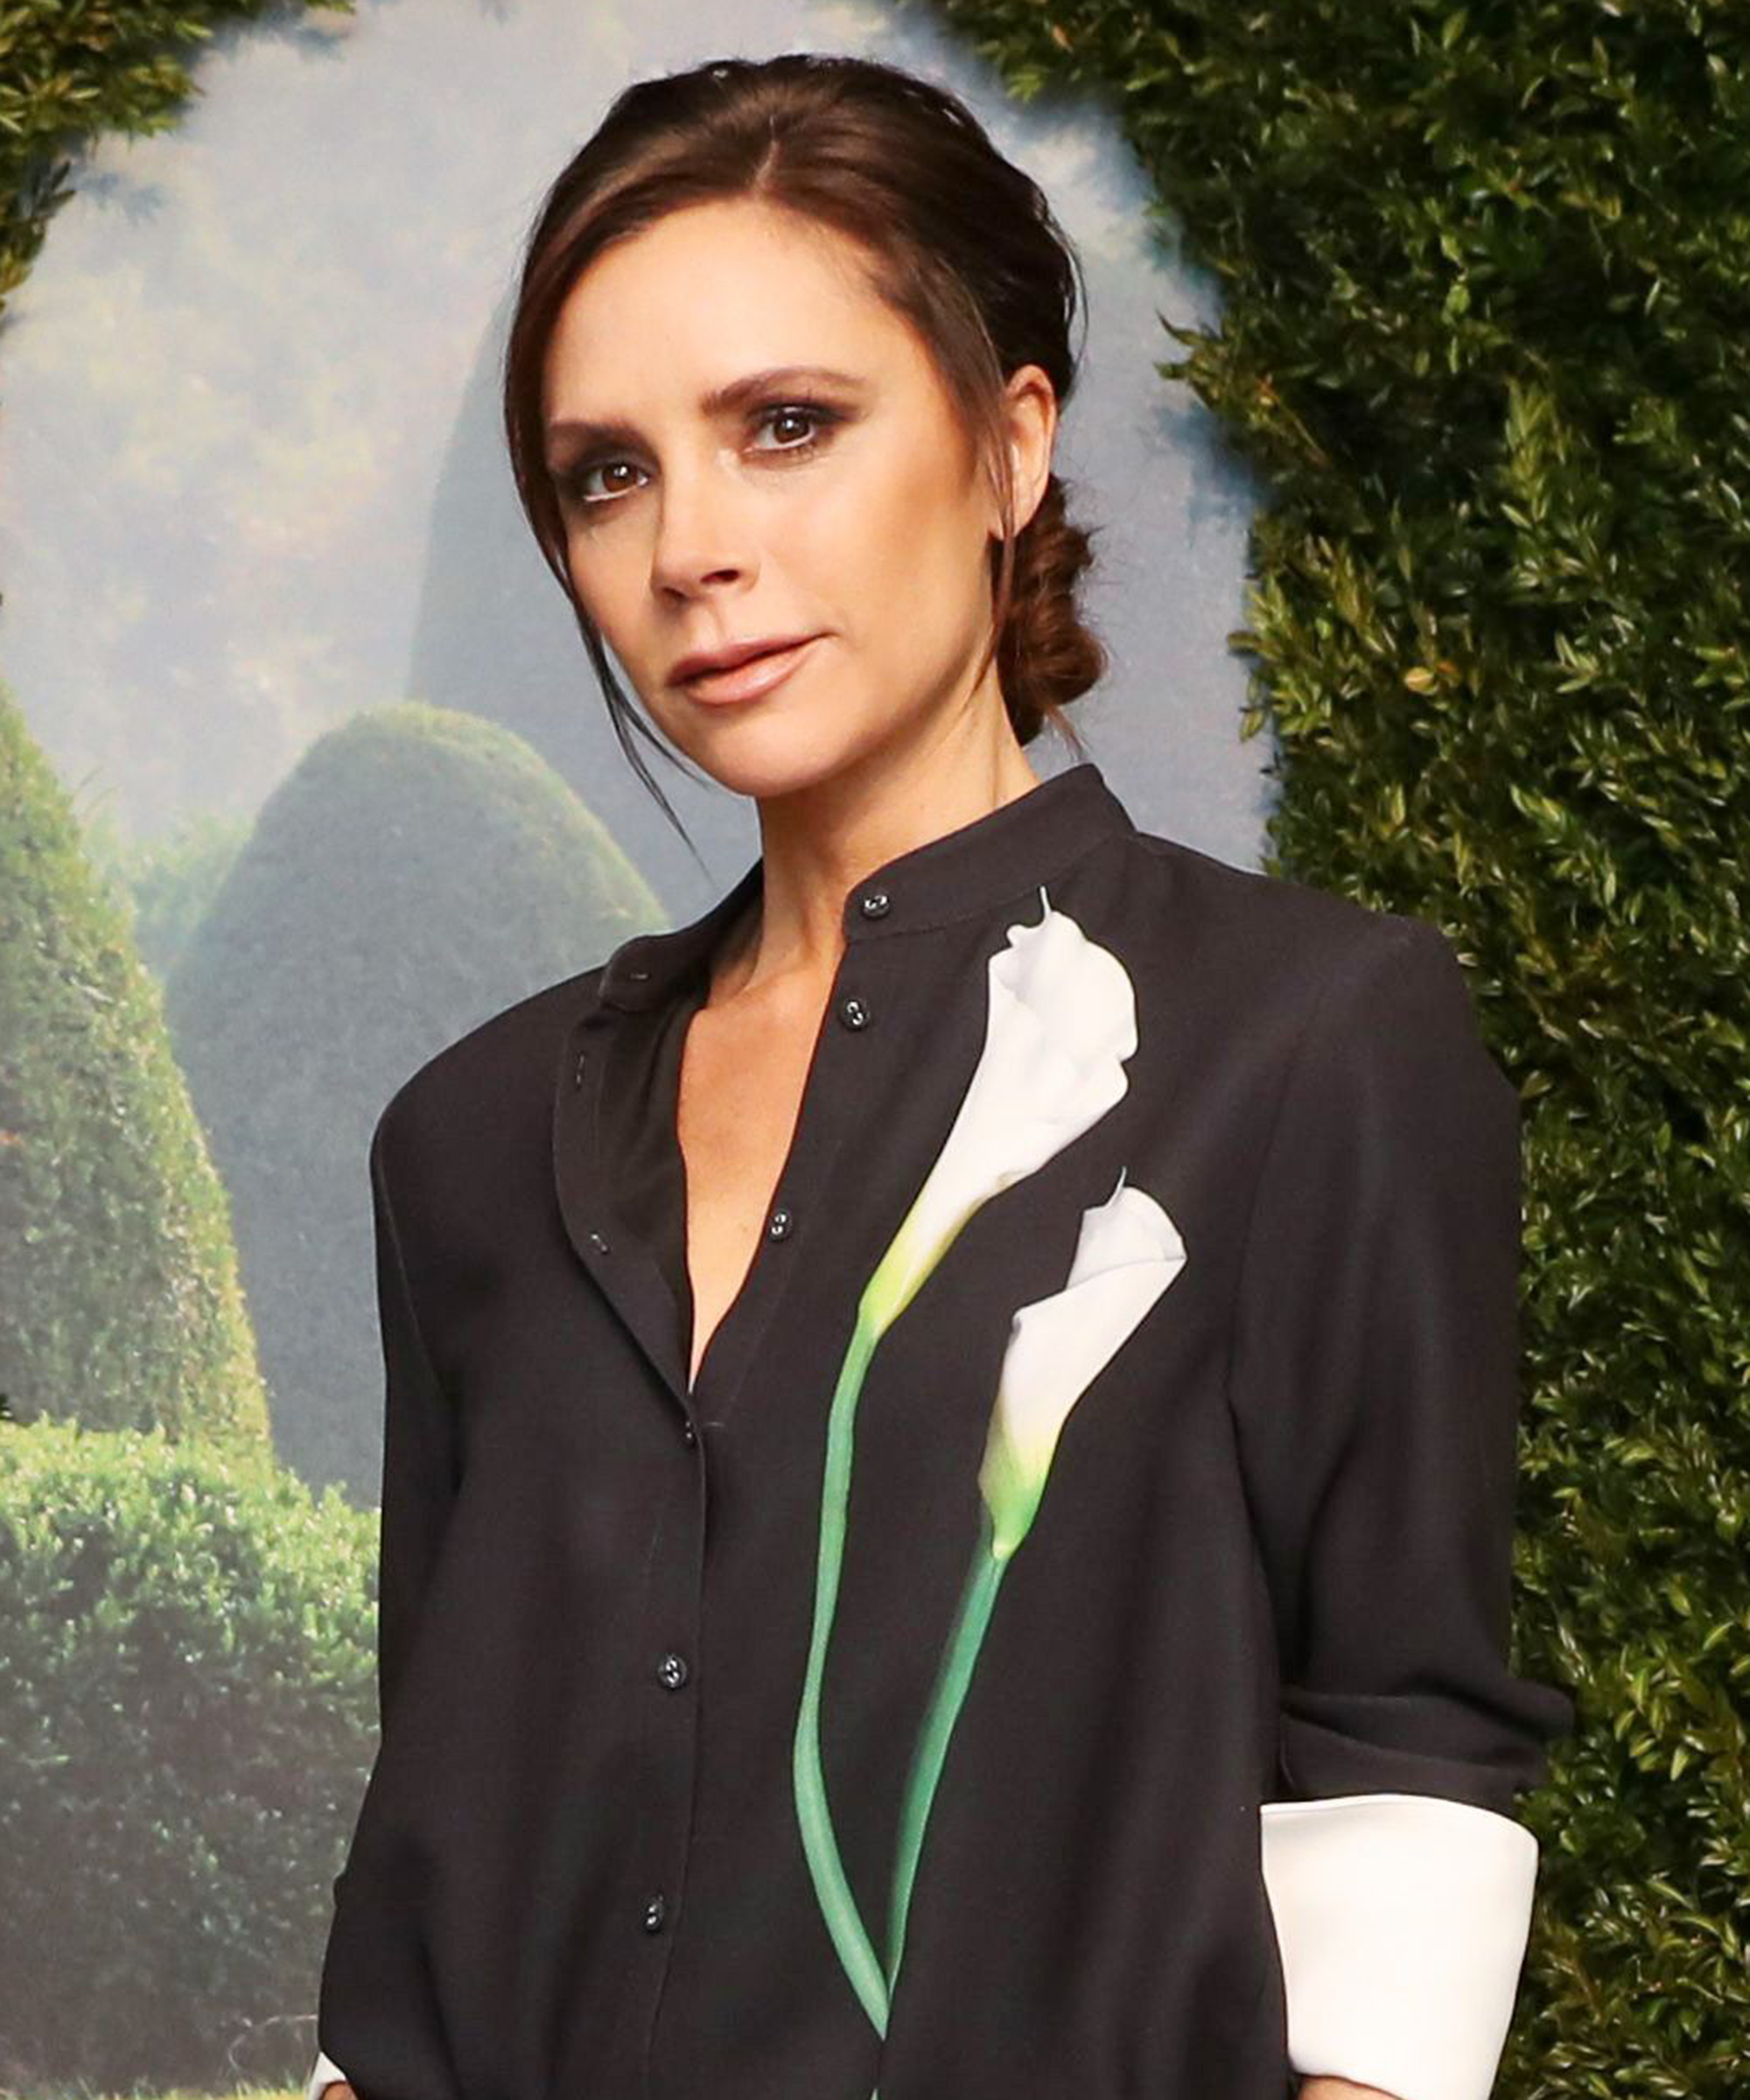 Victoria Beckham convicted of anorexic models